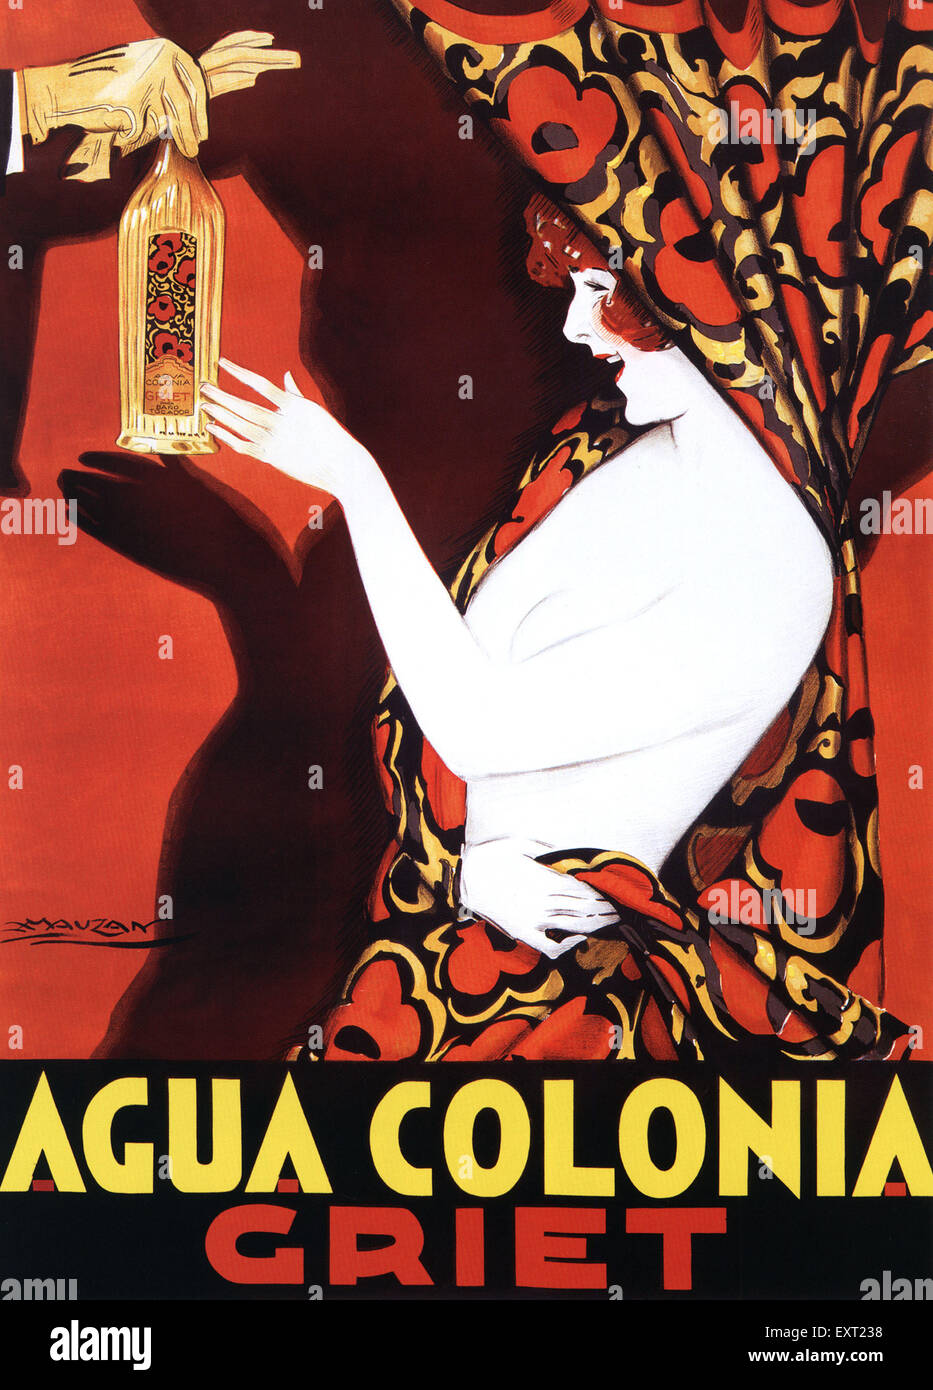 1910s Italy Agua Colonia Griet Poster - Stock Image